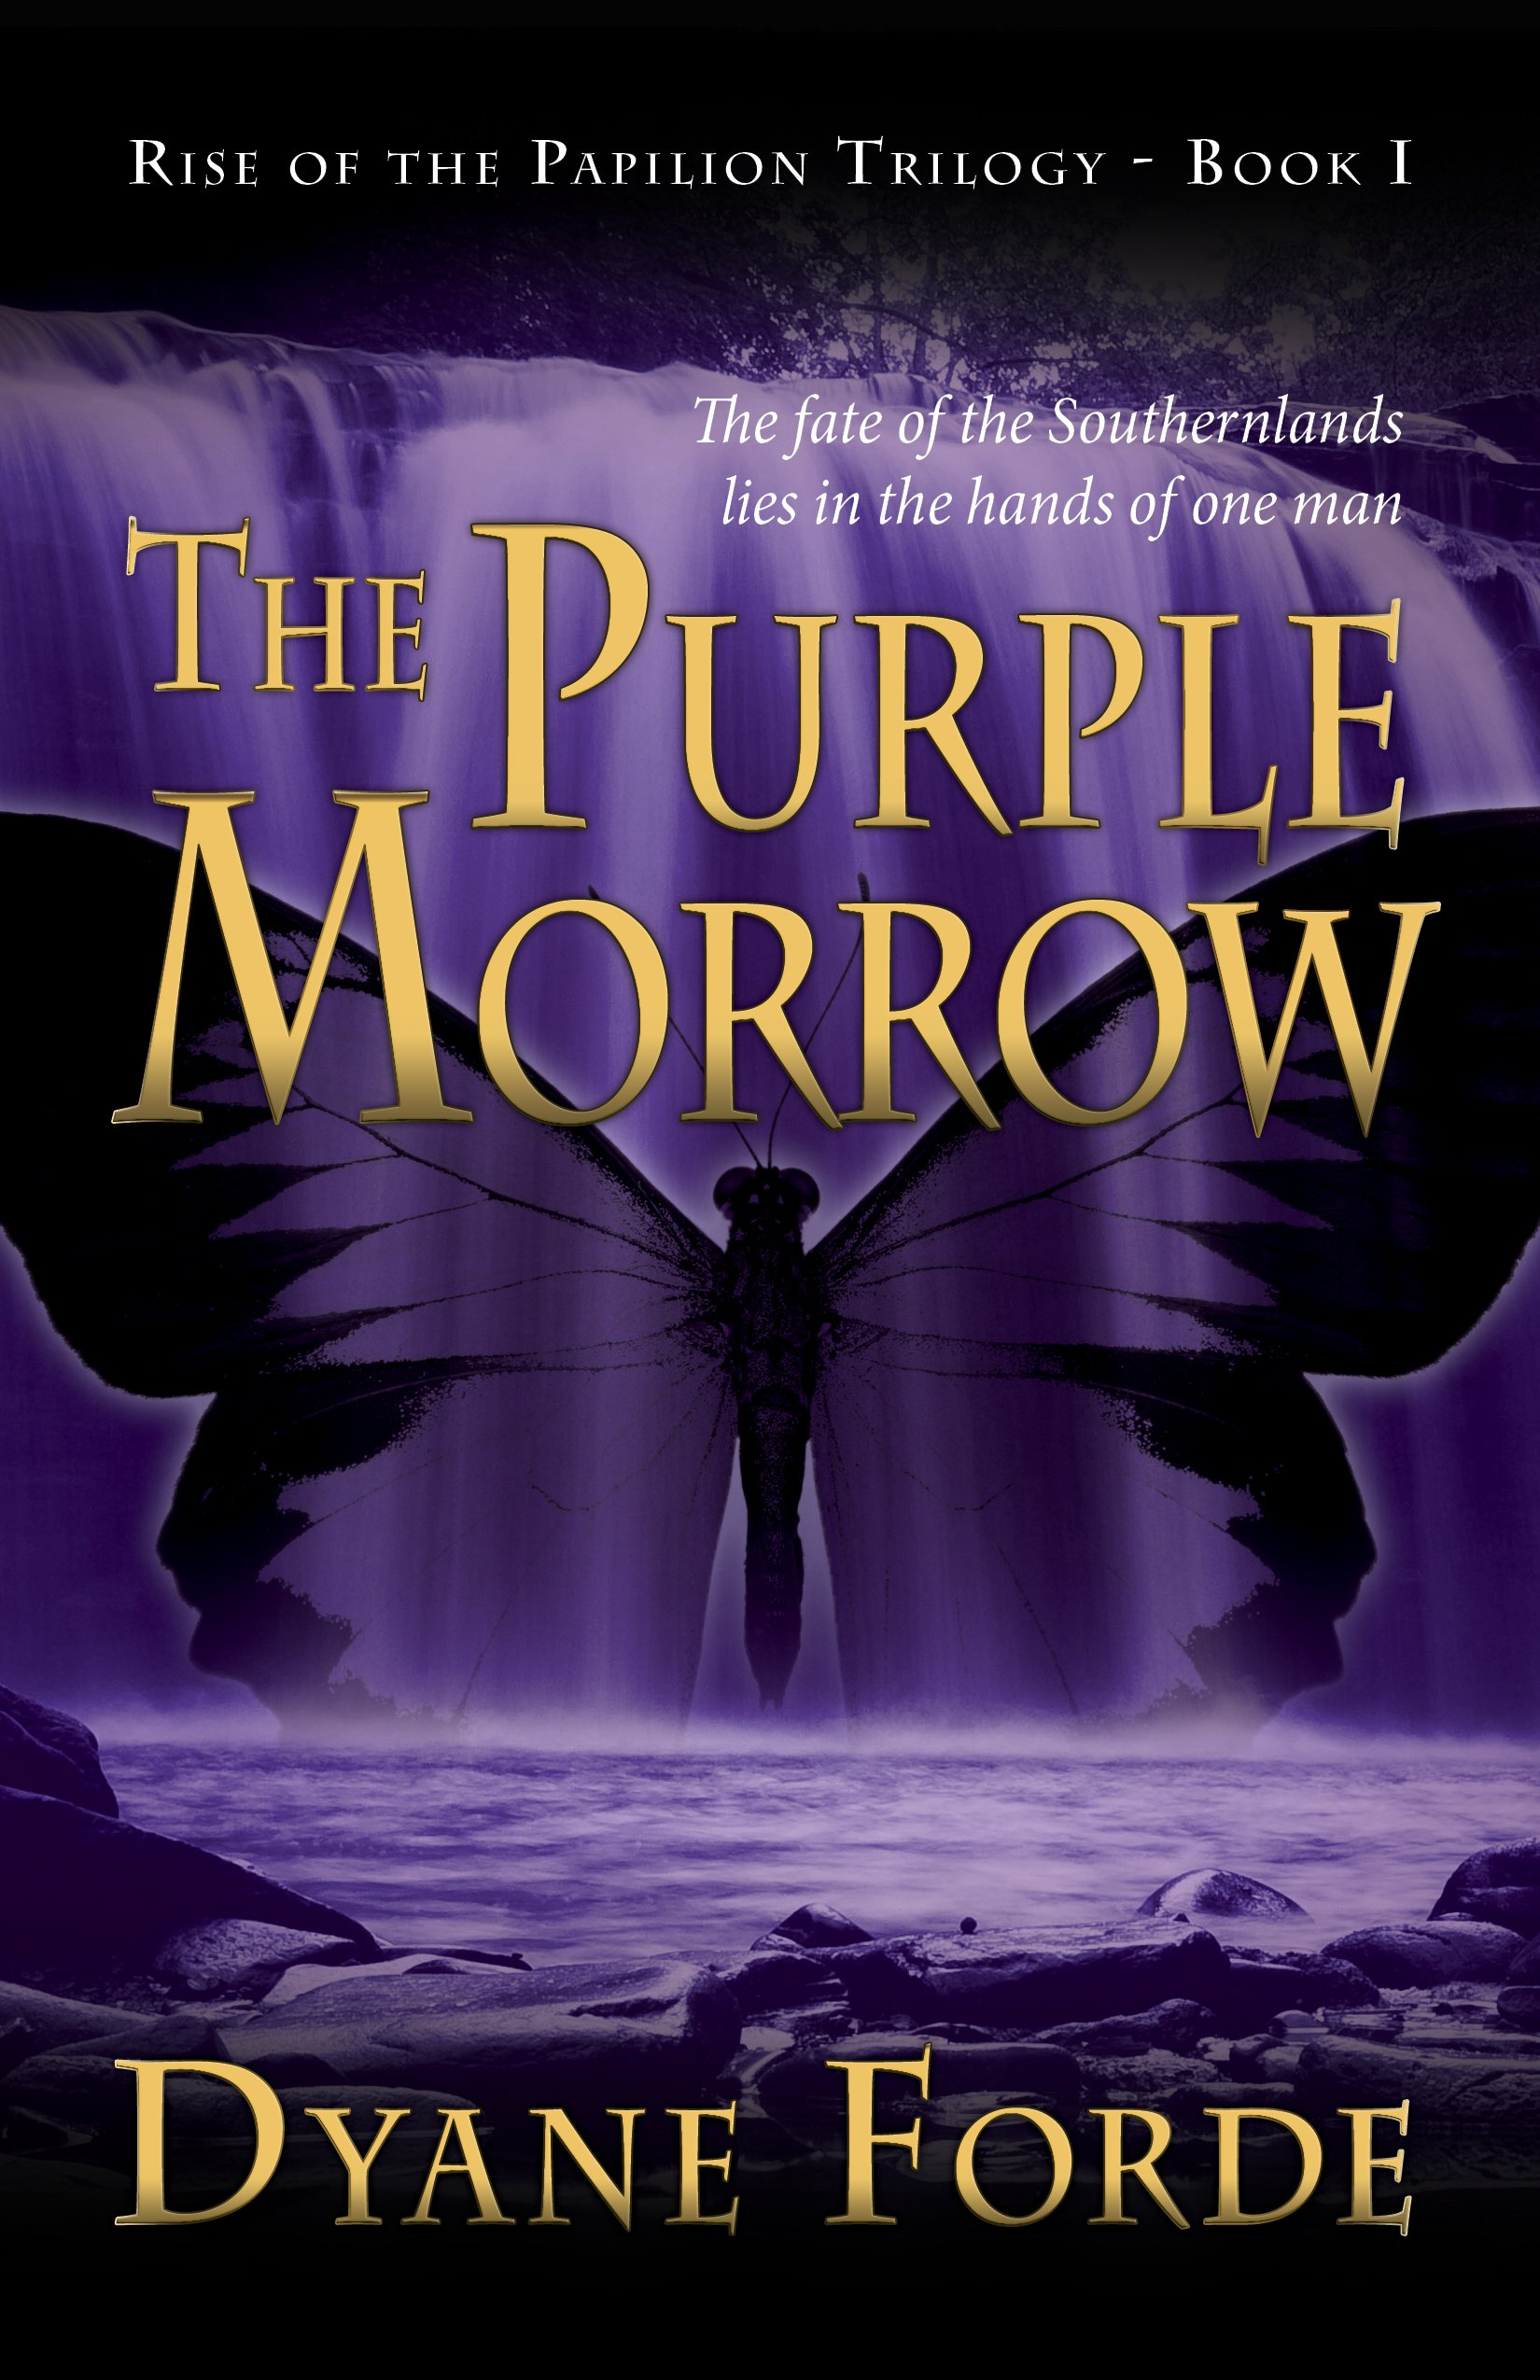 The Purple Morrow by Dyane Forde